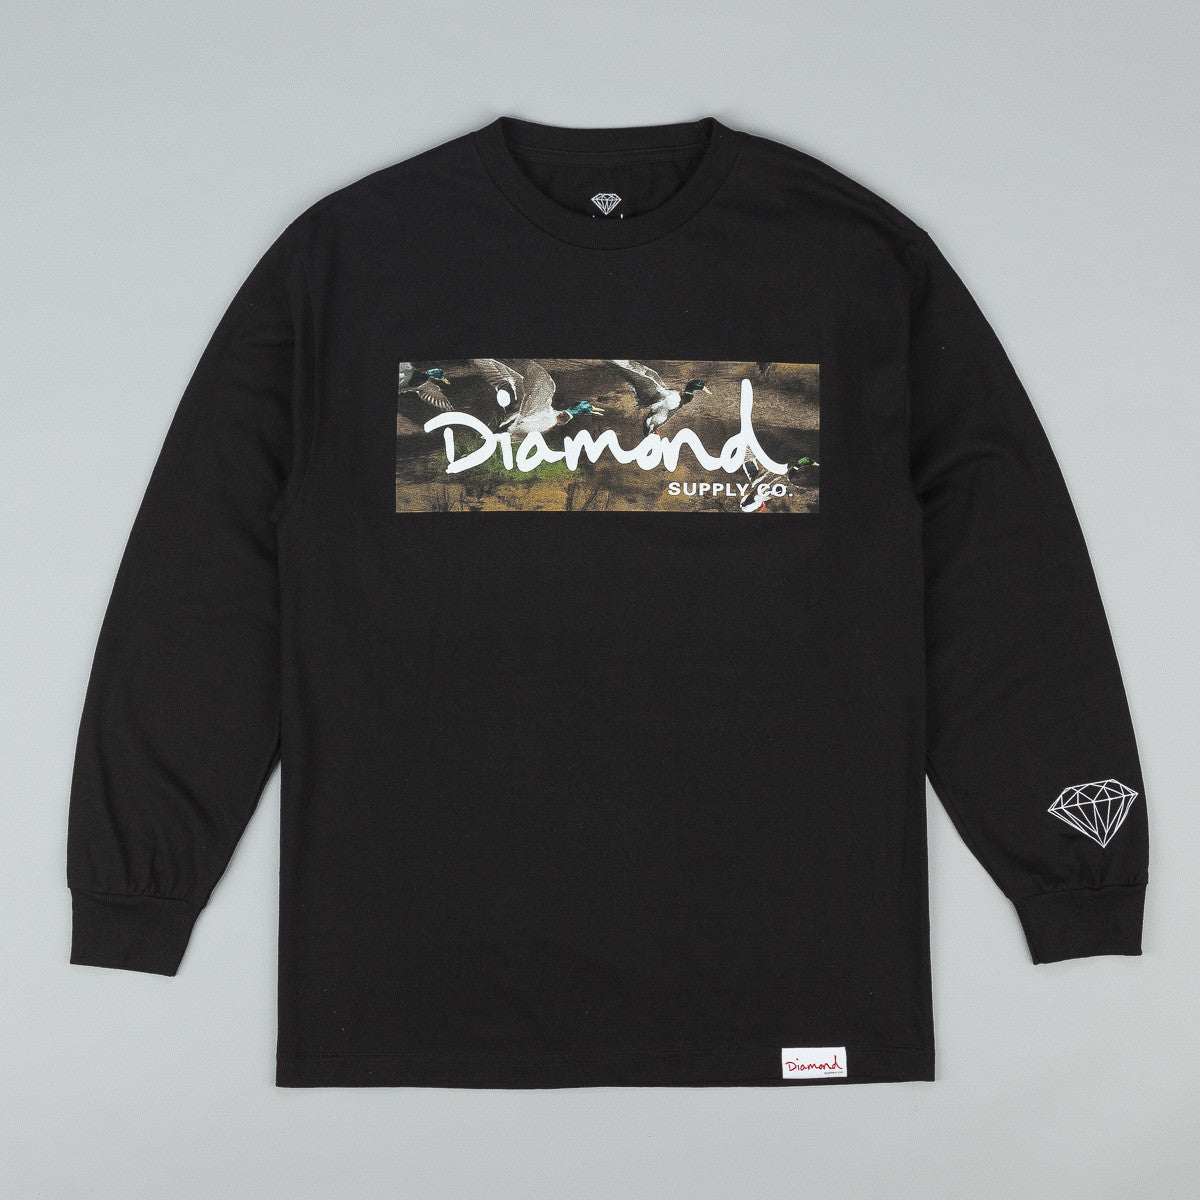 Diamond Woodland Long Shirt T-Shirt - Black